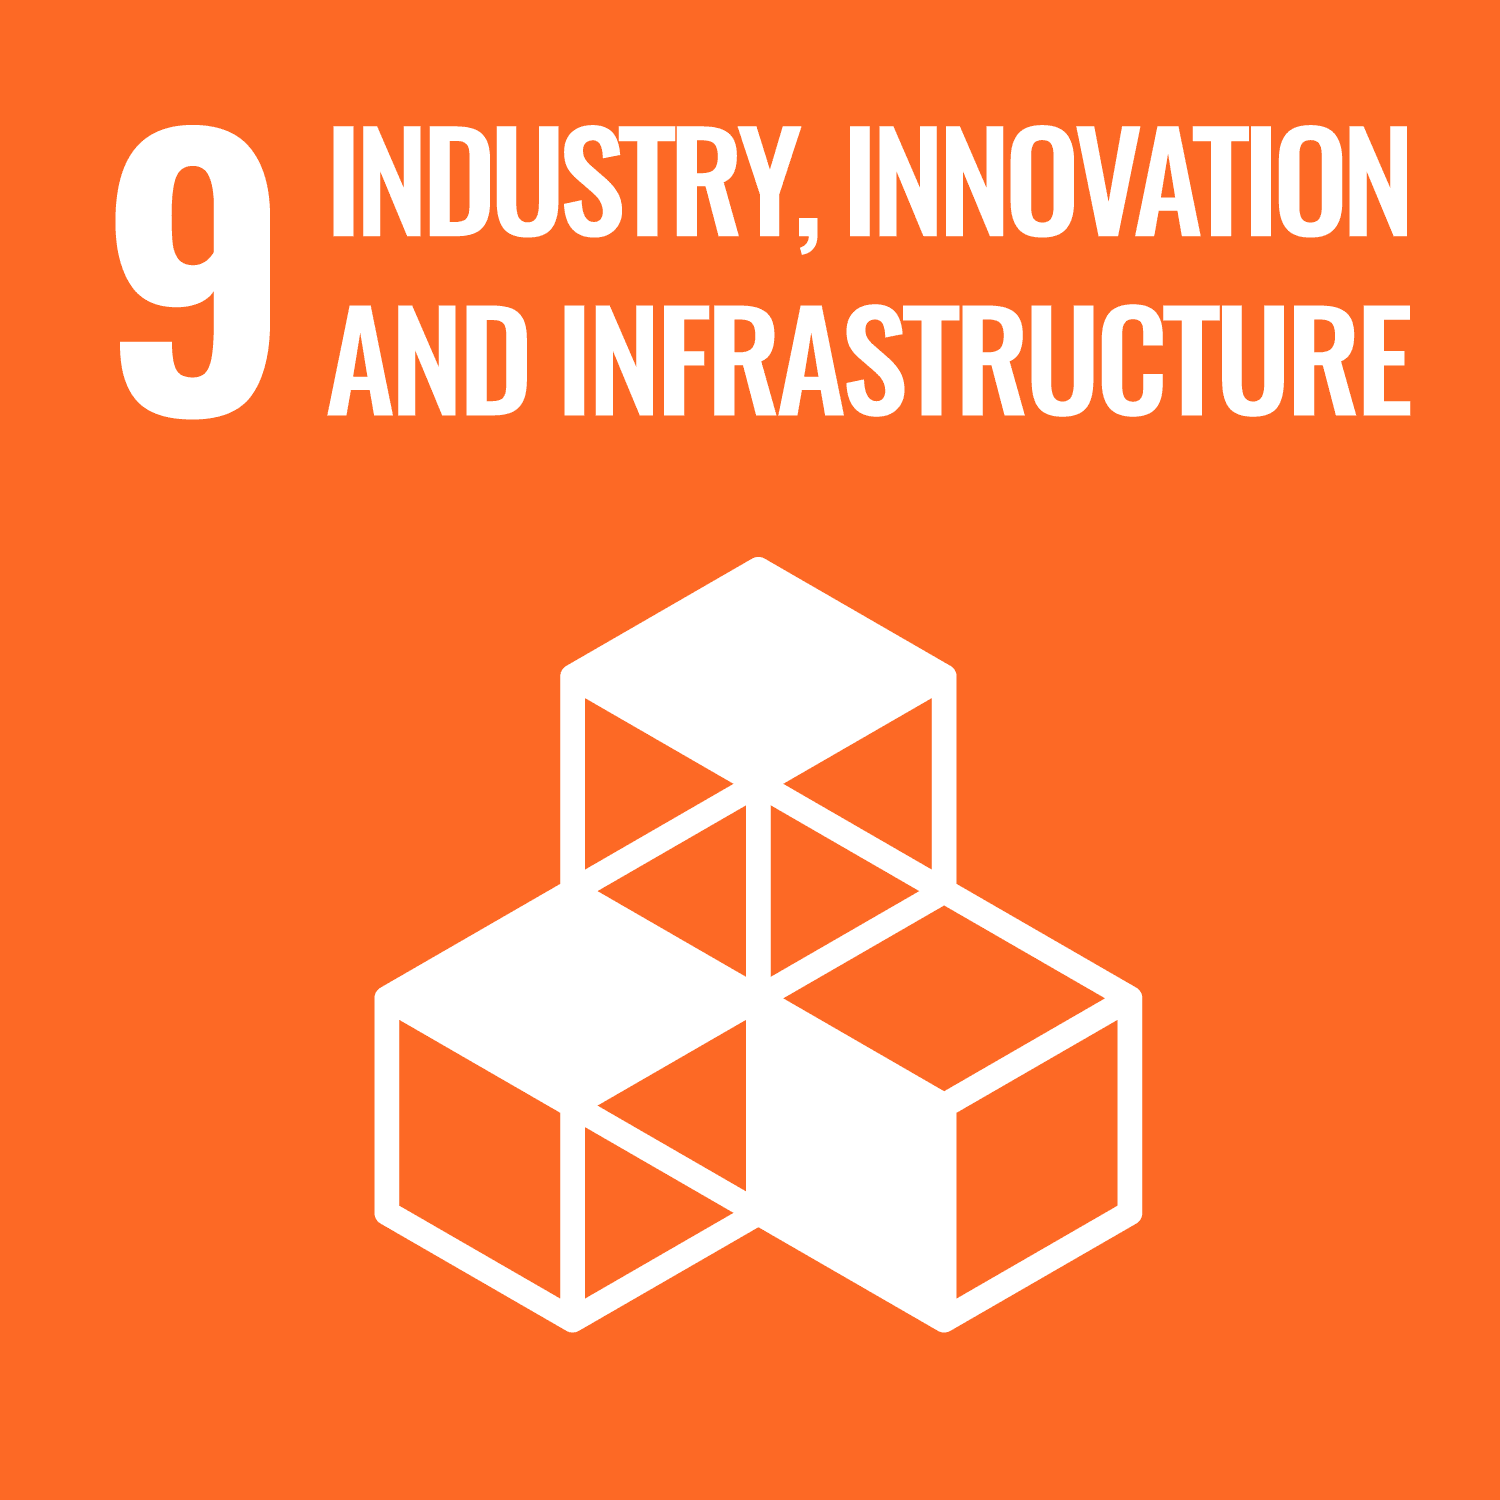 SDG Goal 09-Industry, Innovation and Infrastructure